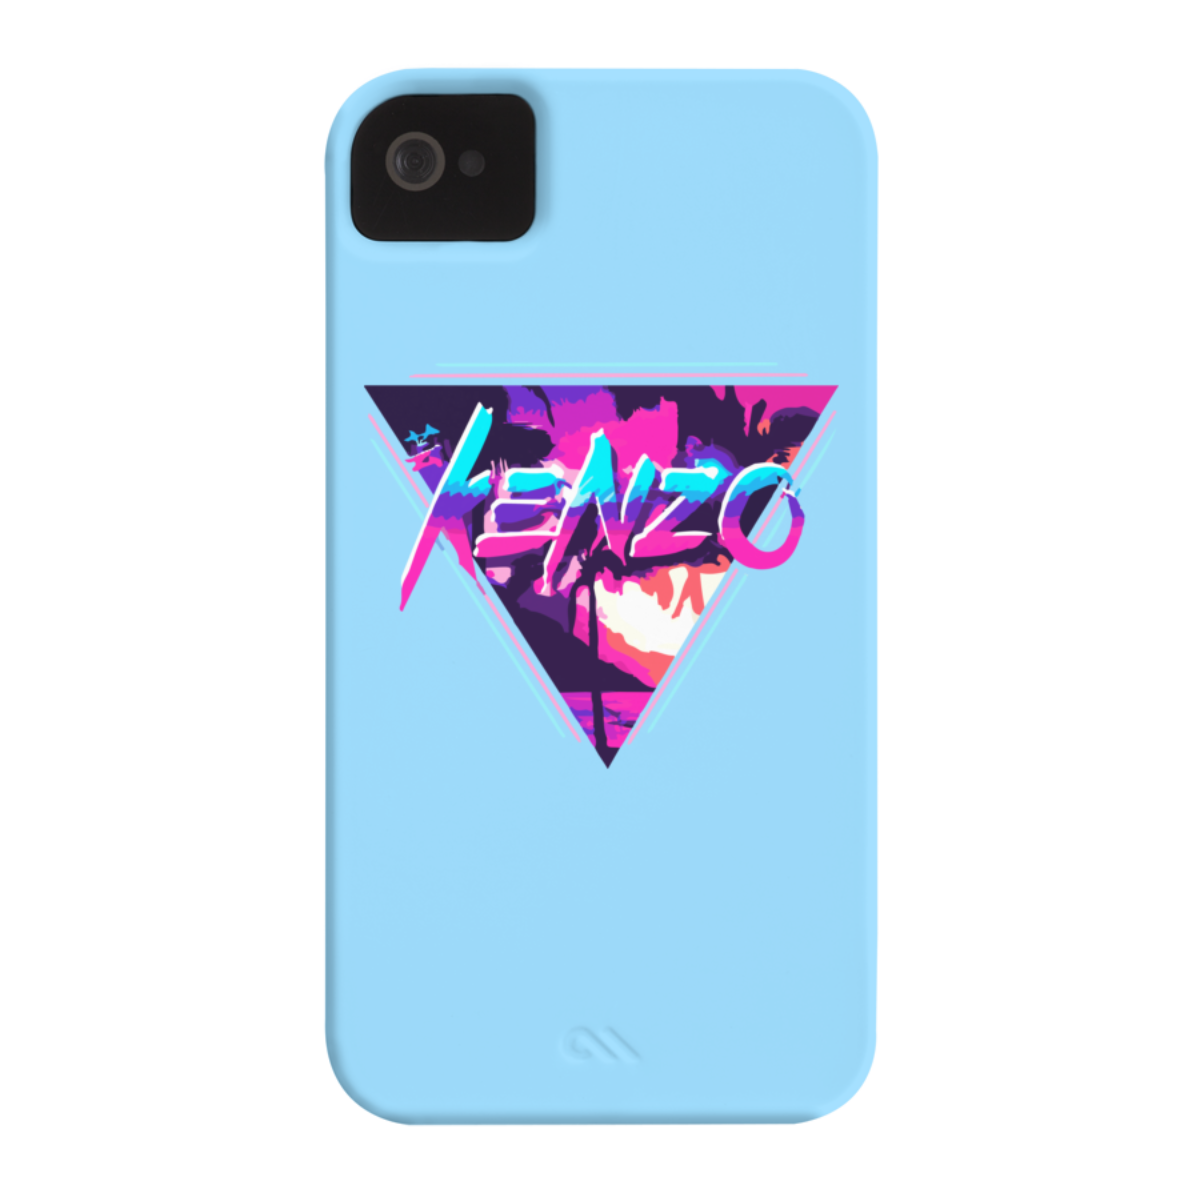 Kenzo Art logo tshirt Phone Case Buy the Blue Kenzo Art logo tshirt phone case designed by KenzoArt. Enjoy this protective phone case for iPhone 4/4s/5/5s/5c/6/6 plus, as well as iPod Touch or Galaxy S4/S5. This Blue phone case is featured in sci-fi & fantasy, art styles, neon, retro, space, summer, themes, vintage categories. Shop DesignByHumans.com for the largest selection of creative graphic tees, tank tops, sweatshirts, phone cases, and art prints.